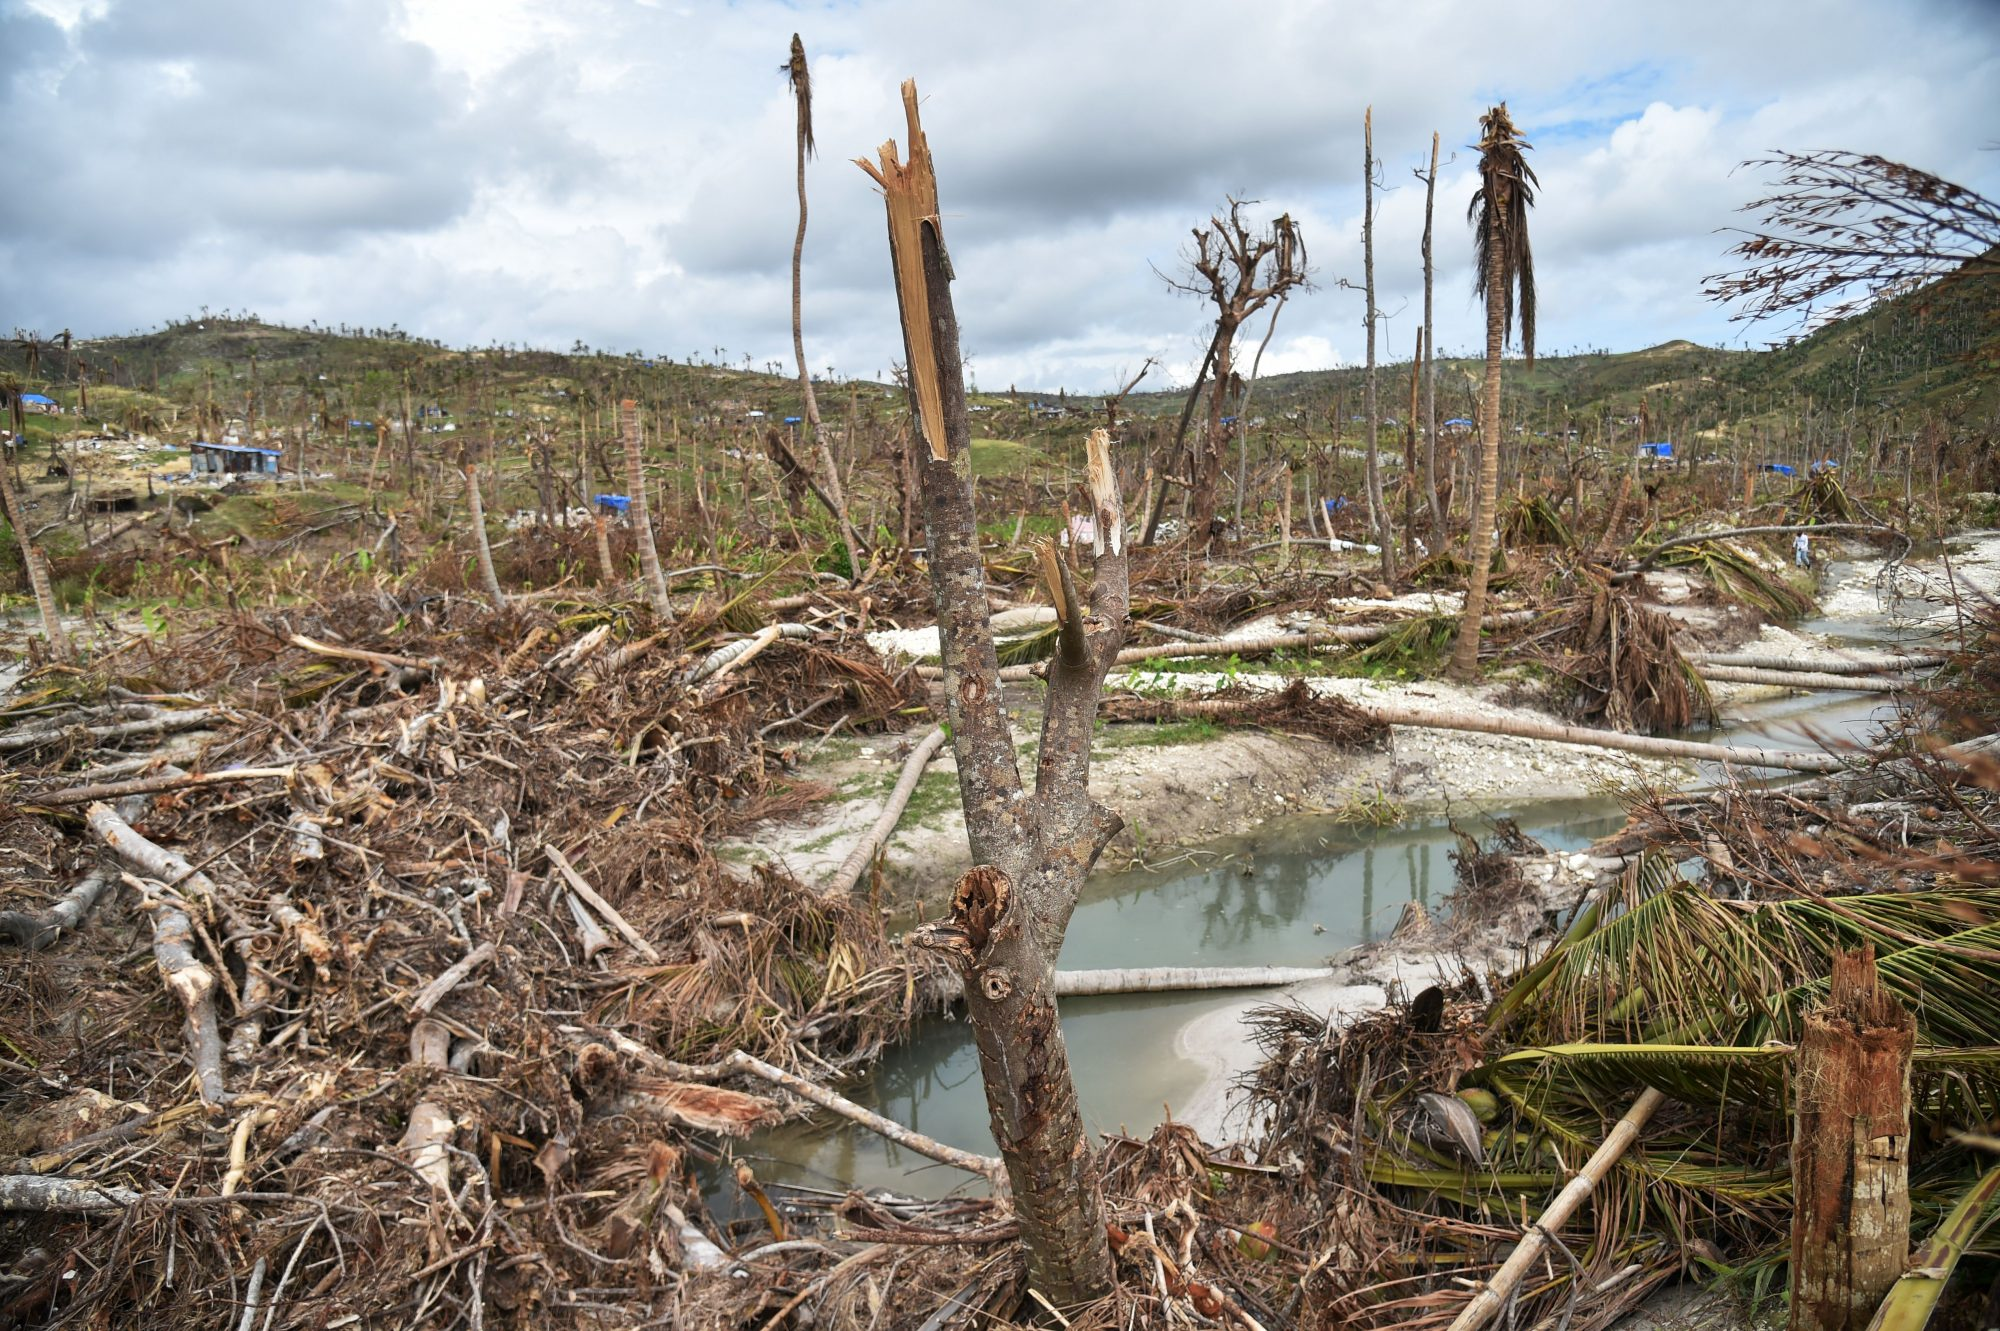 Destruction from Hurricane Matthew is seen in the area of Chabet, commune of Roche-a-Bateaux, southwestern Haiti, on October 18, 2016